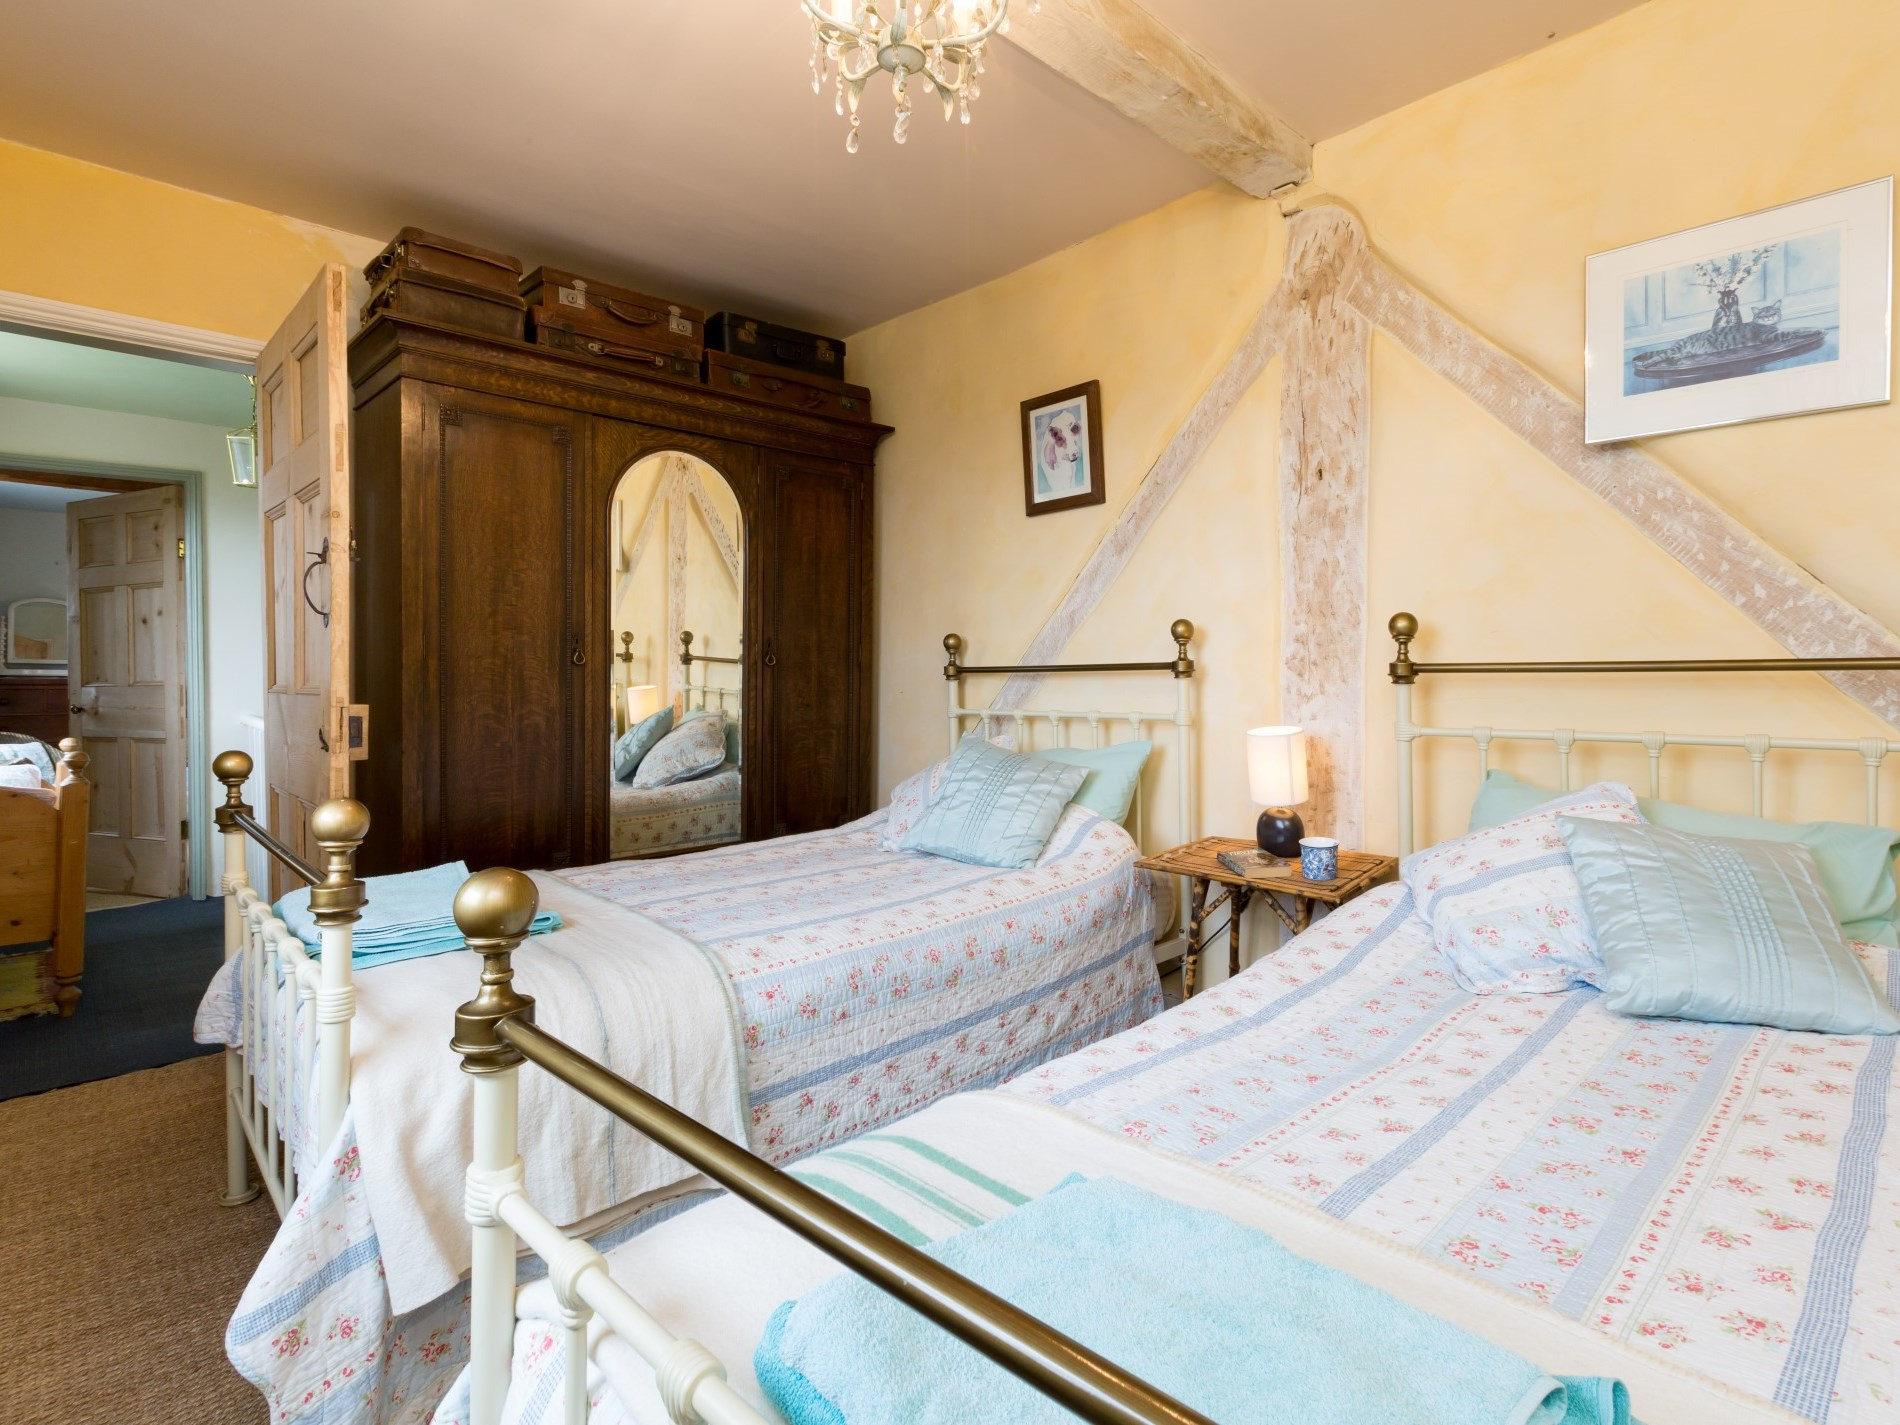 6 Bedroom House in Gloucestershire, Heart of England